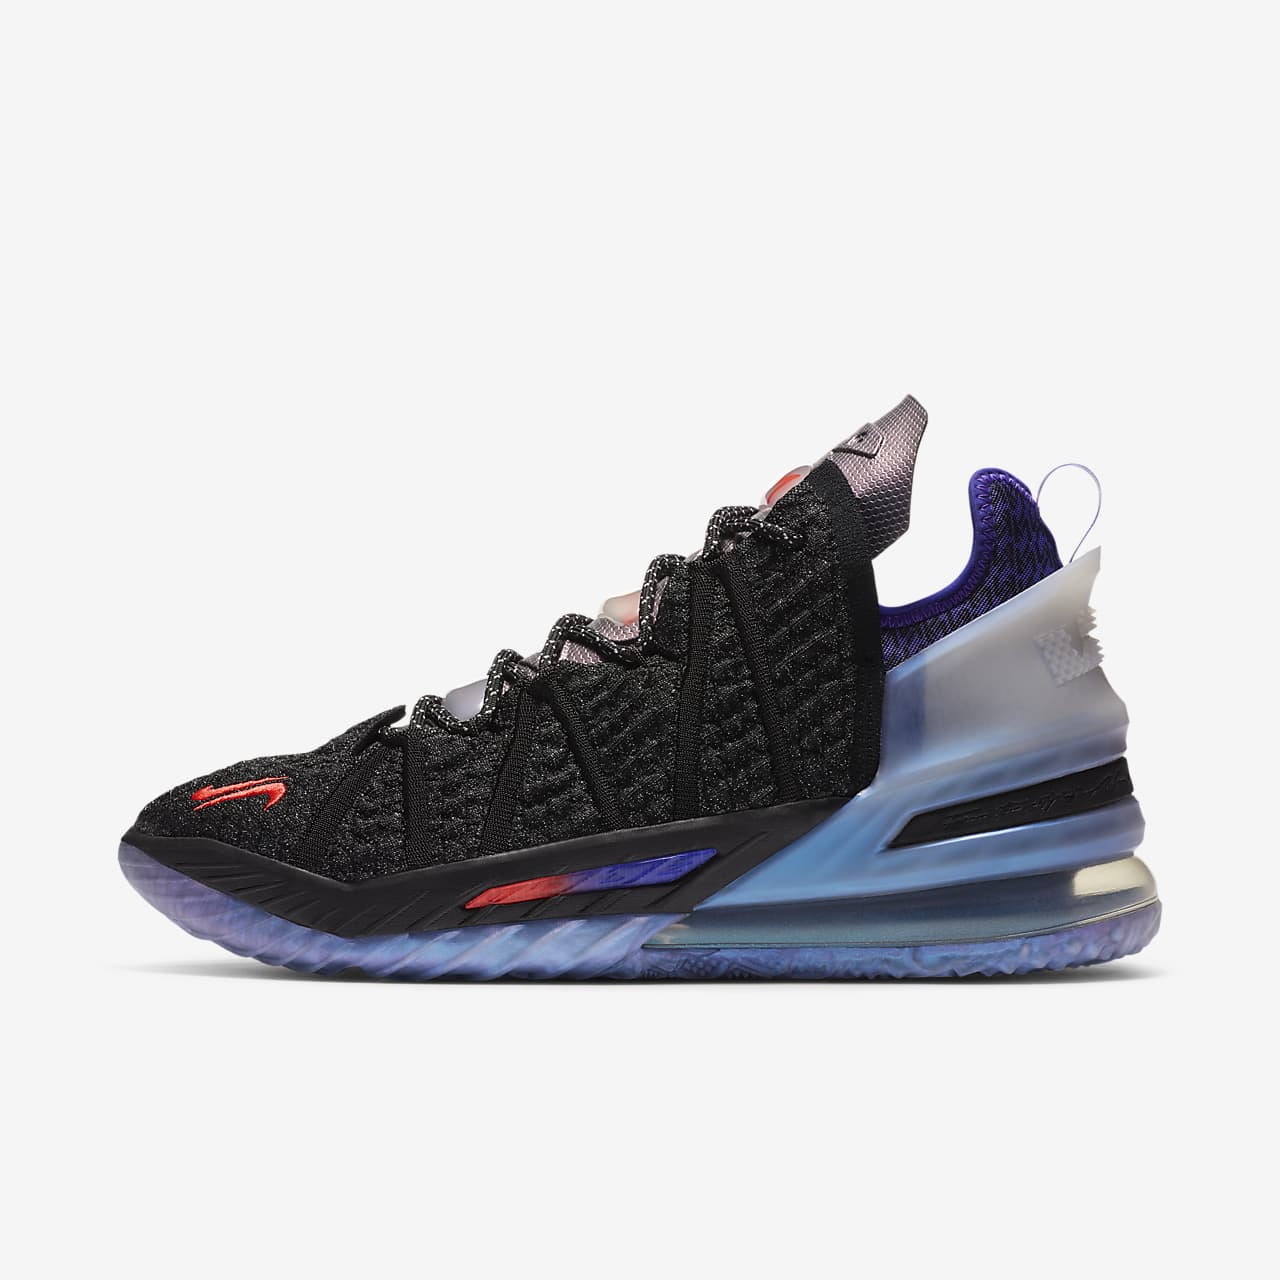 LeBron 18 'The Chosen 2' Basketball Shoe